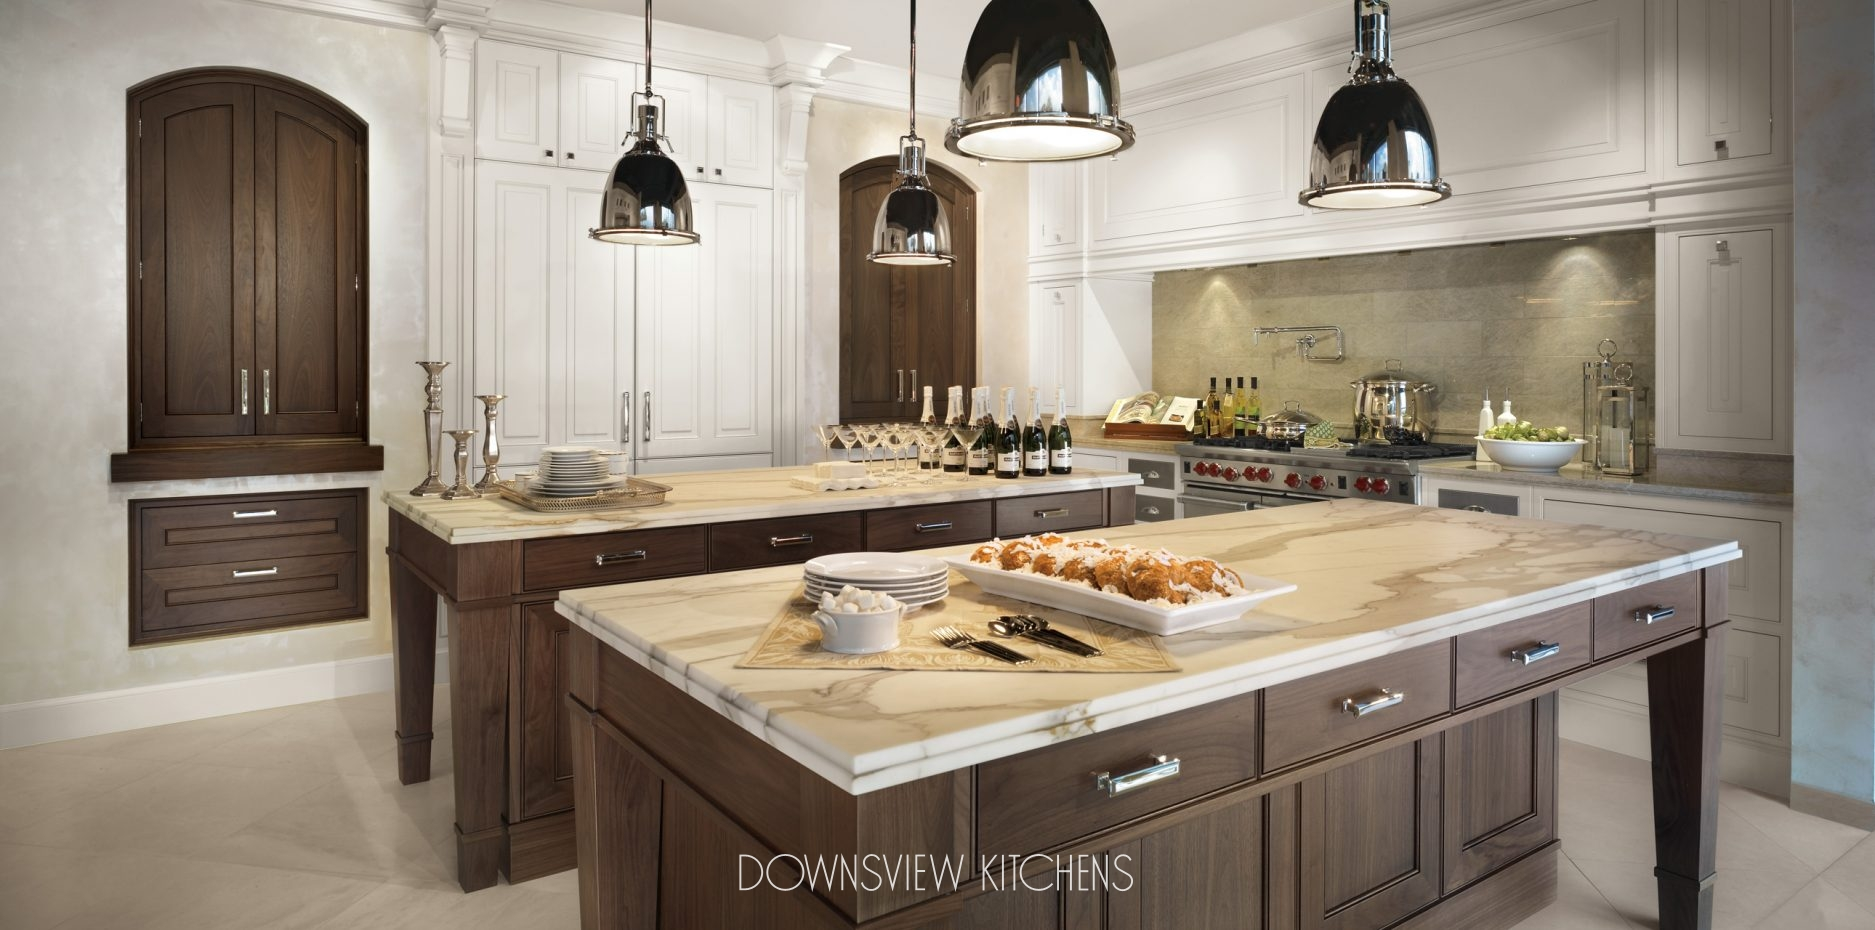 TALE OF TWO ISLANDS  Downsview Kitchens and Fine Custom